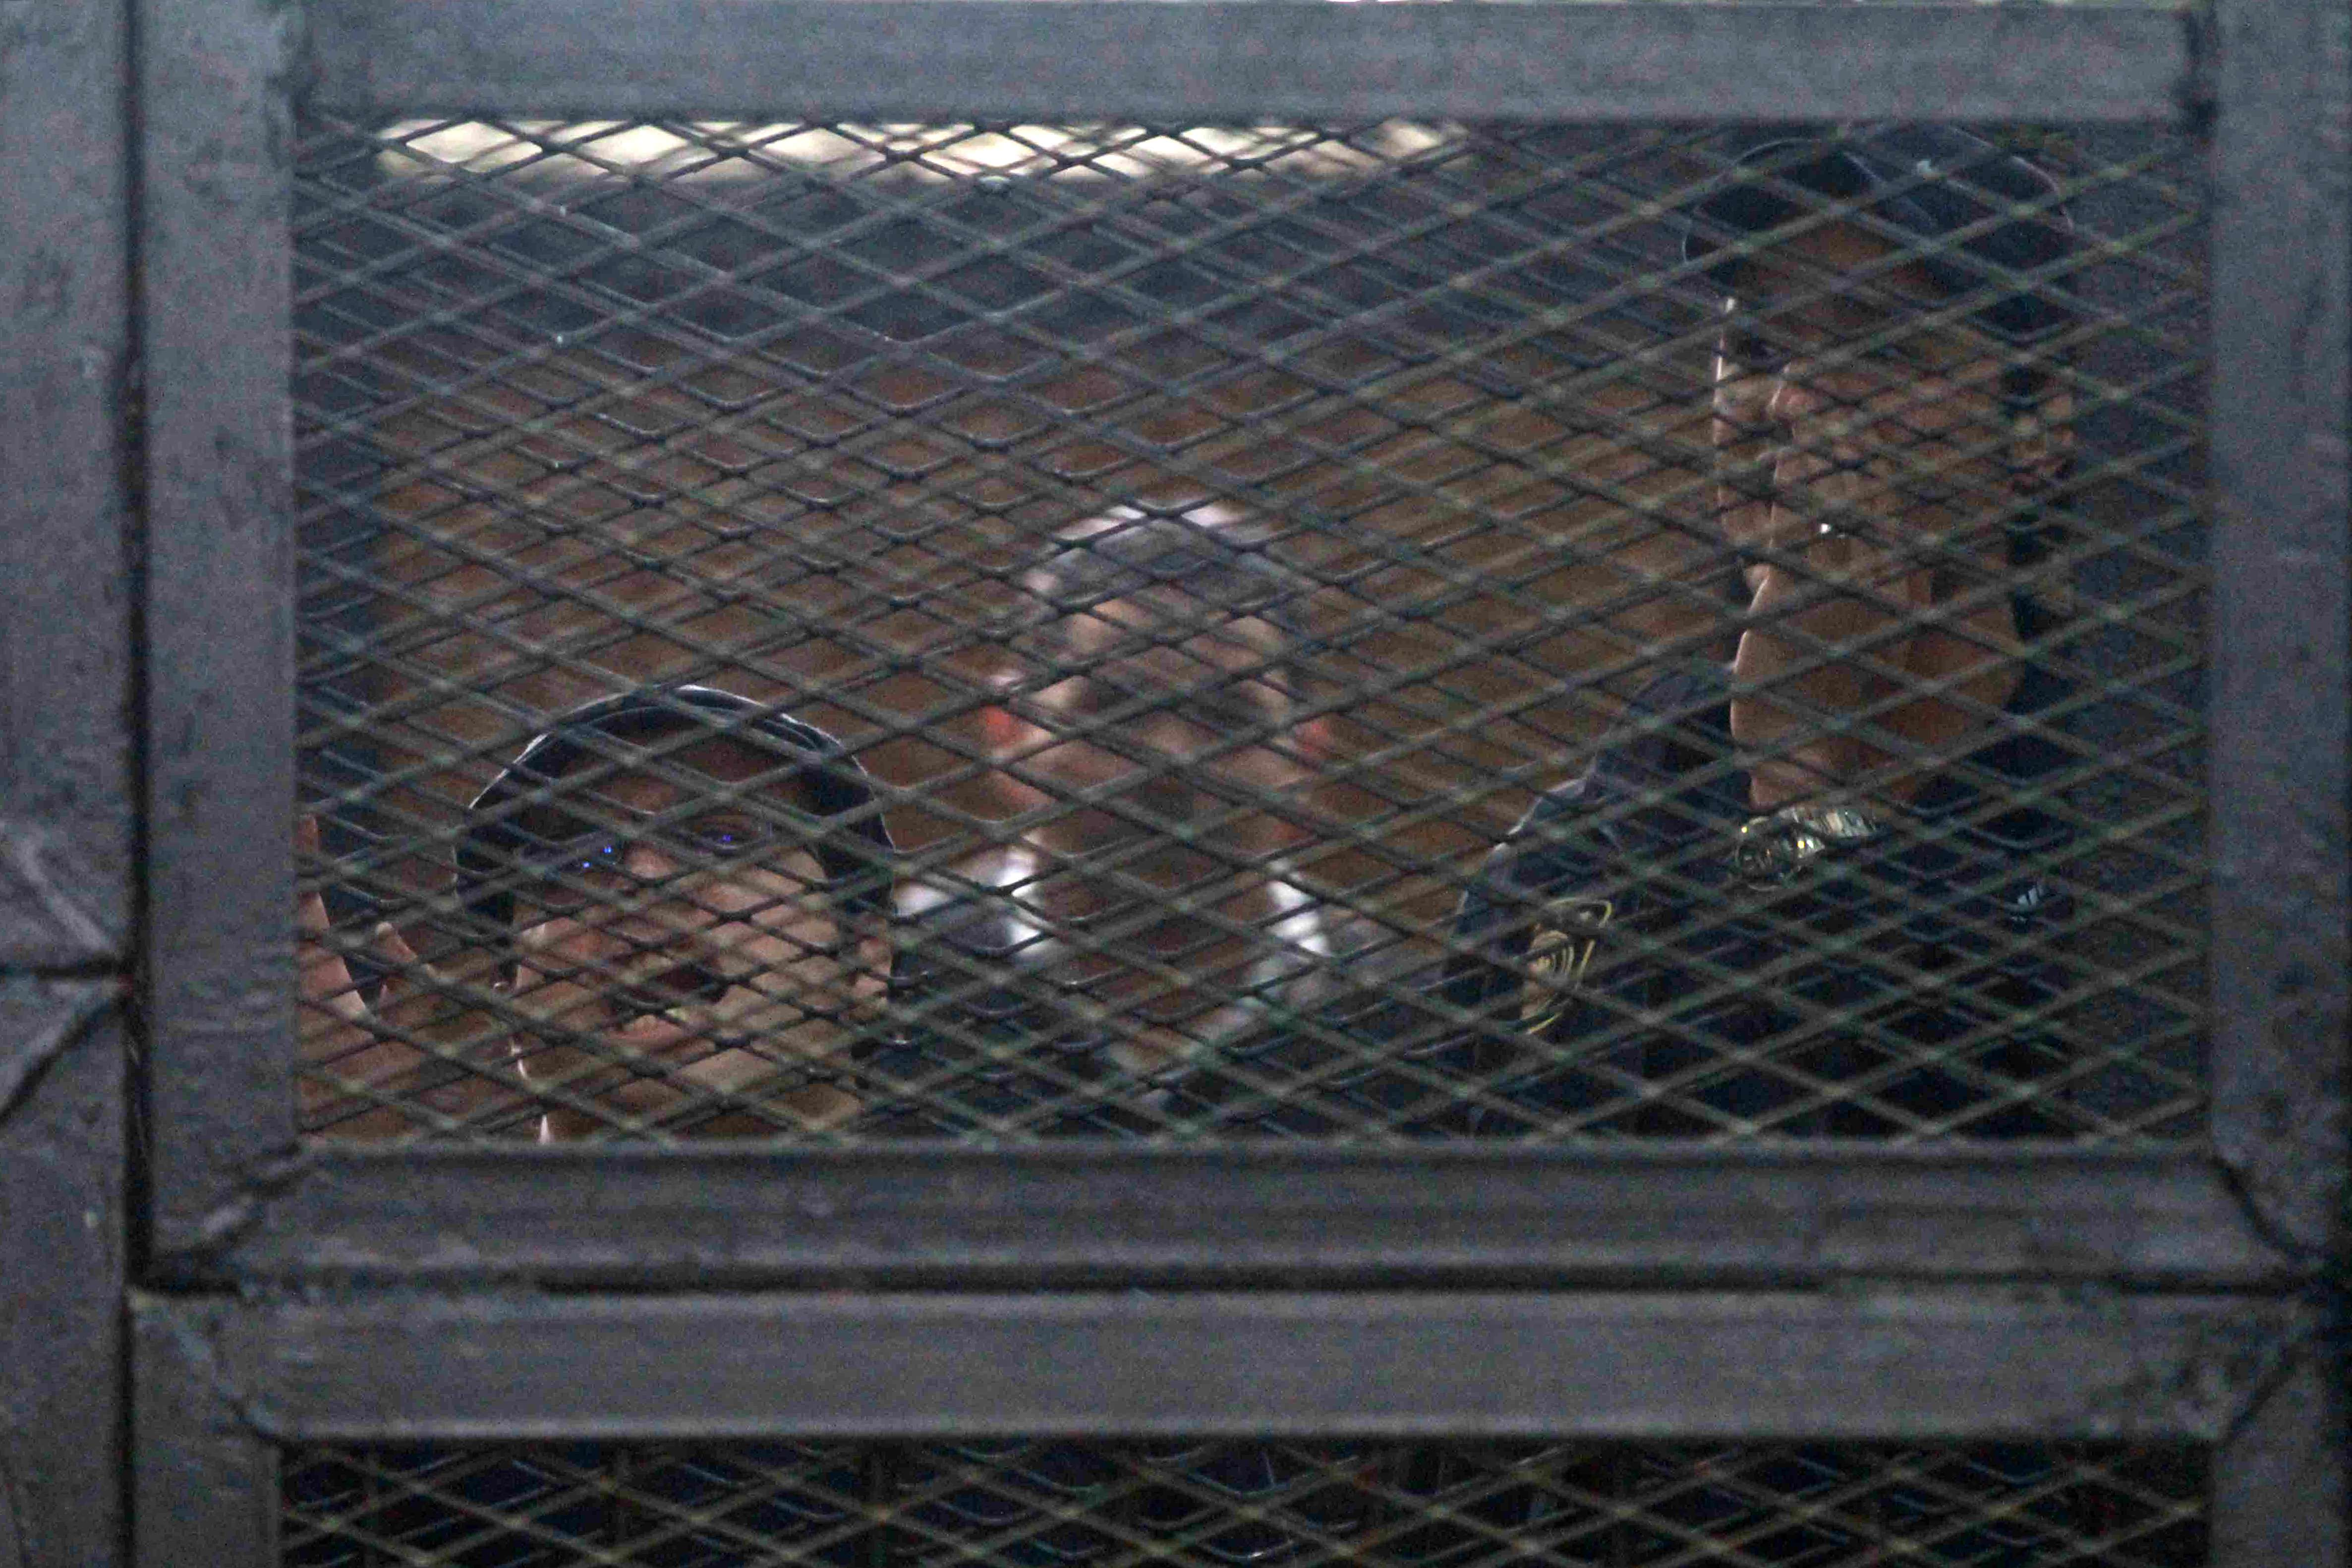 Egyptian prominent activists Ahmed Douma (Right) and Ahmed Maher (left), react as they stand in the accused dock during their trial in the capital Cairo on Monday.  (AFP Photo)